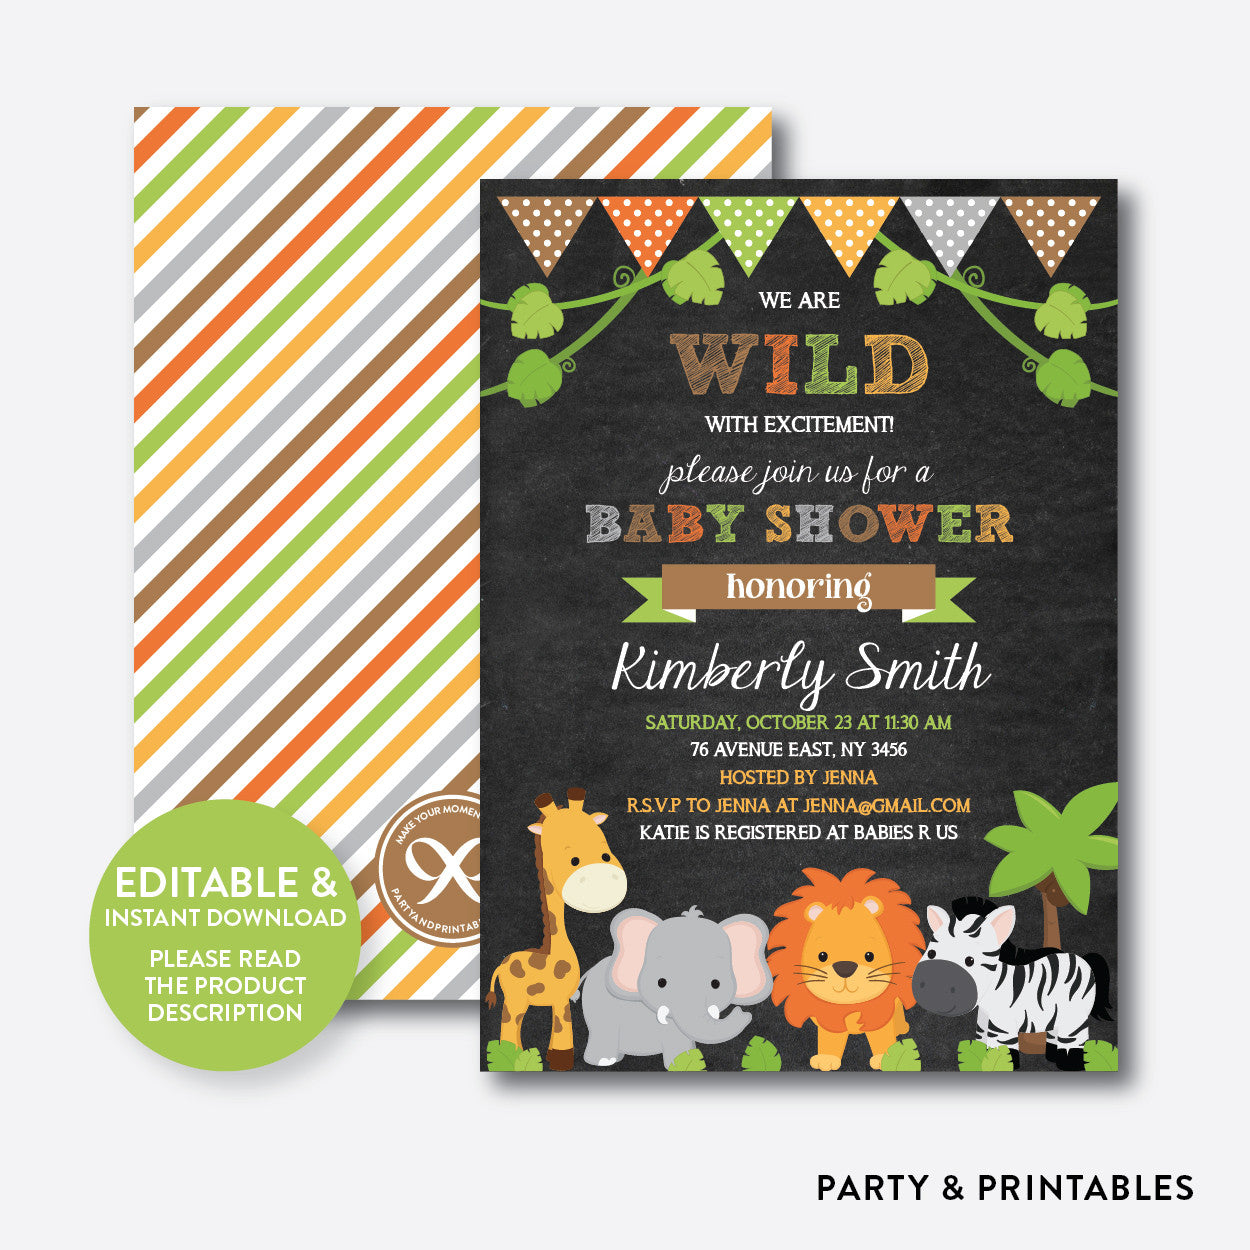 Wild Safari Chalkboard Baby Shower Invitation / Editable / Instant ...